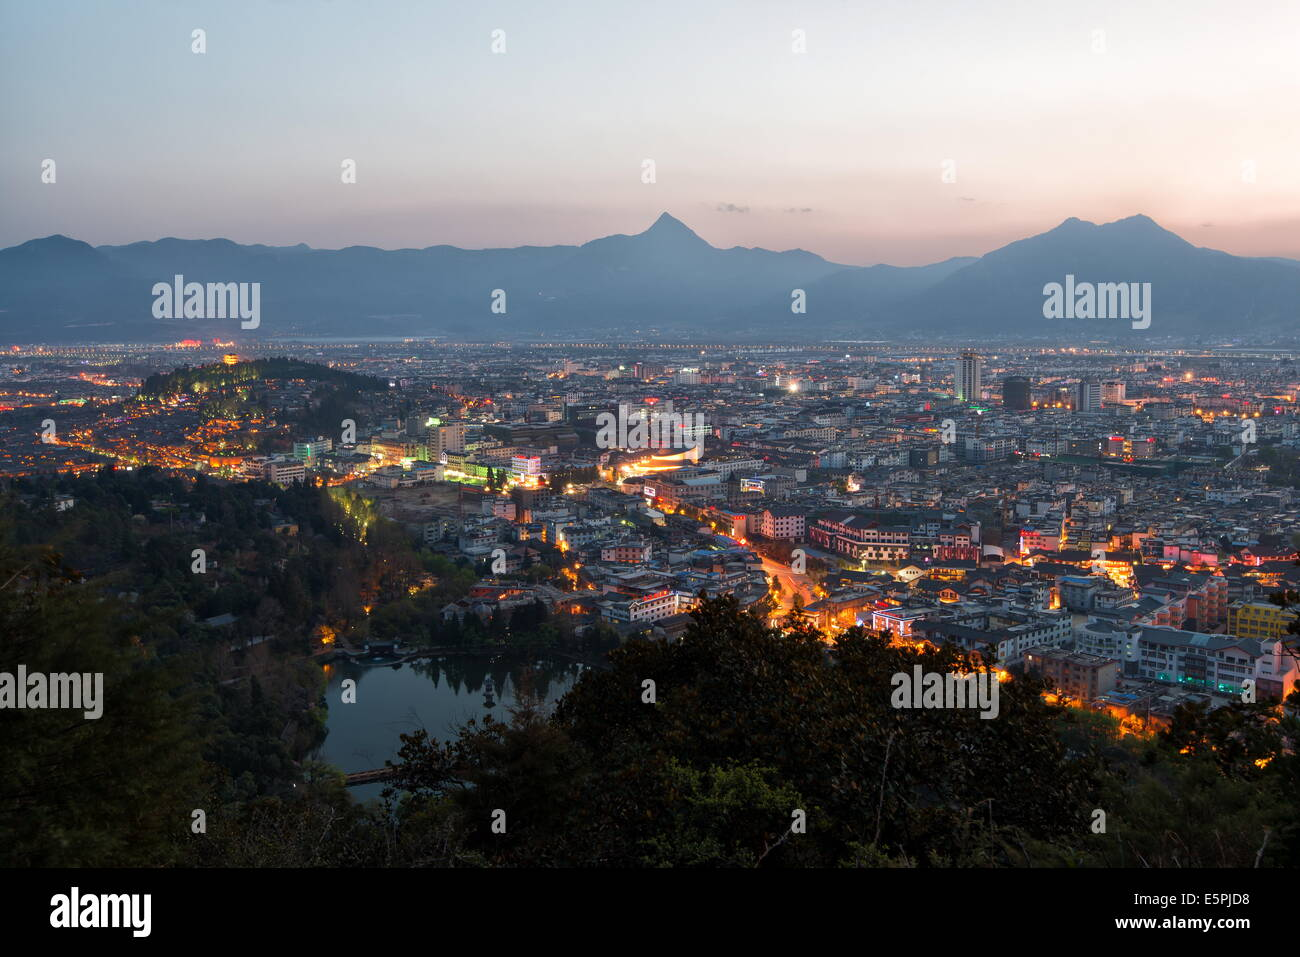 Cityscape of Lijiang, with Jade Spring Park, Lion Hill and surrounding mountains, Lijiang, Yunnan, China, Asia - Stock Image